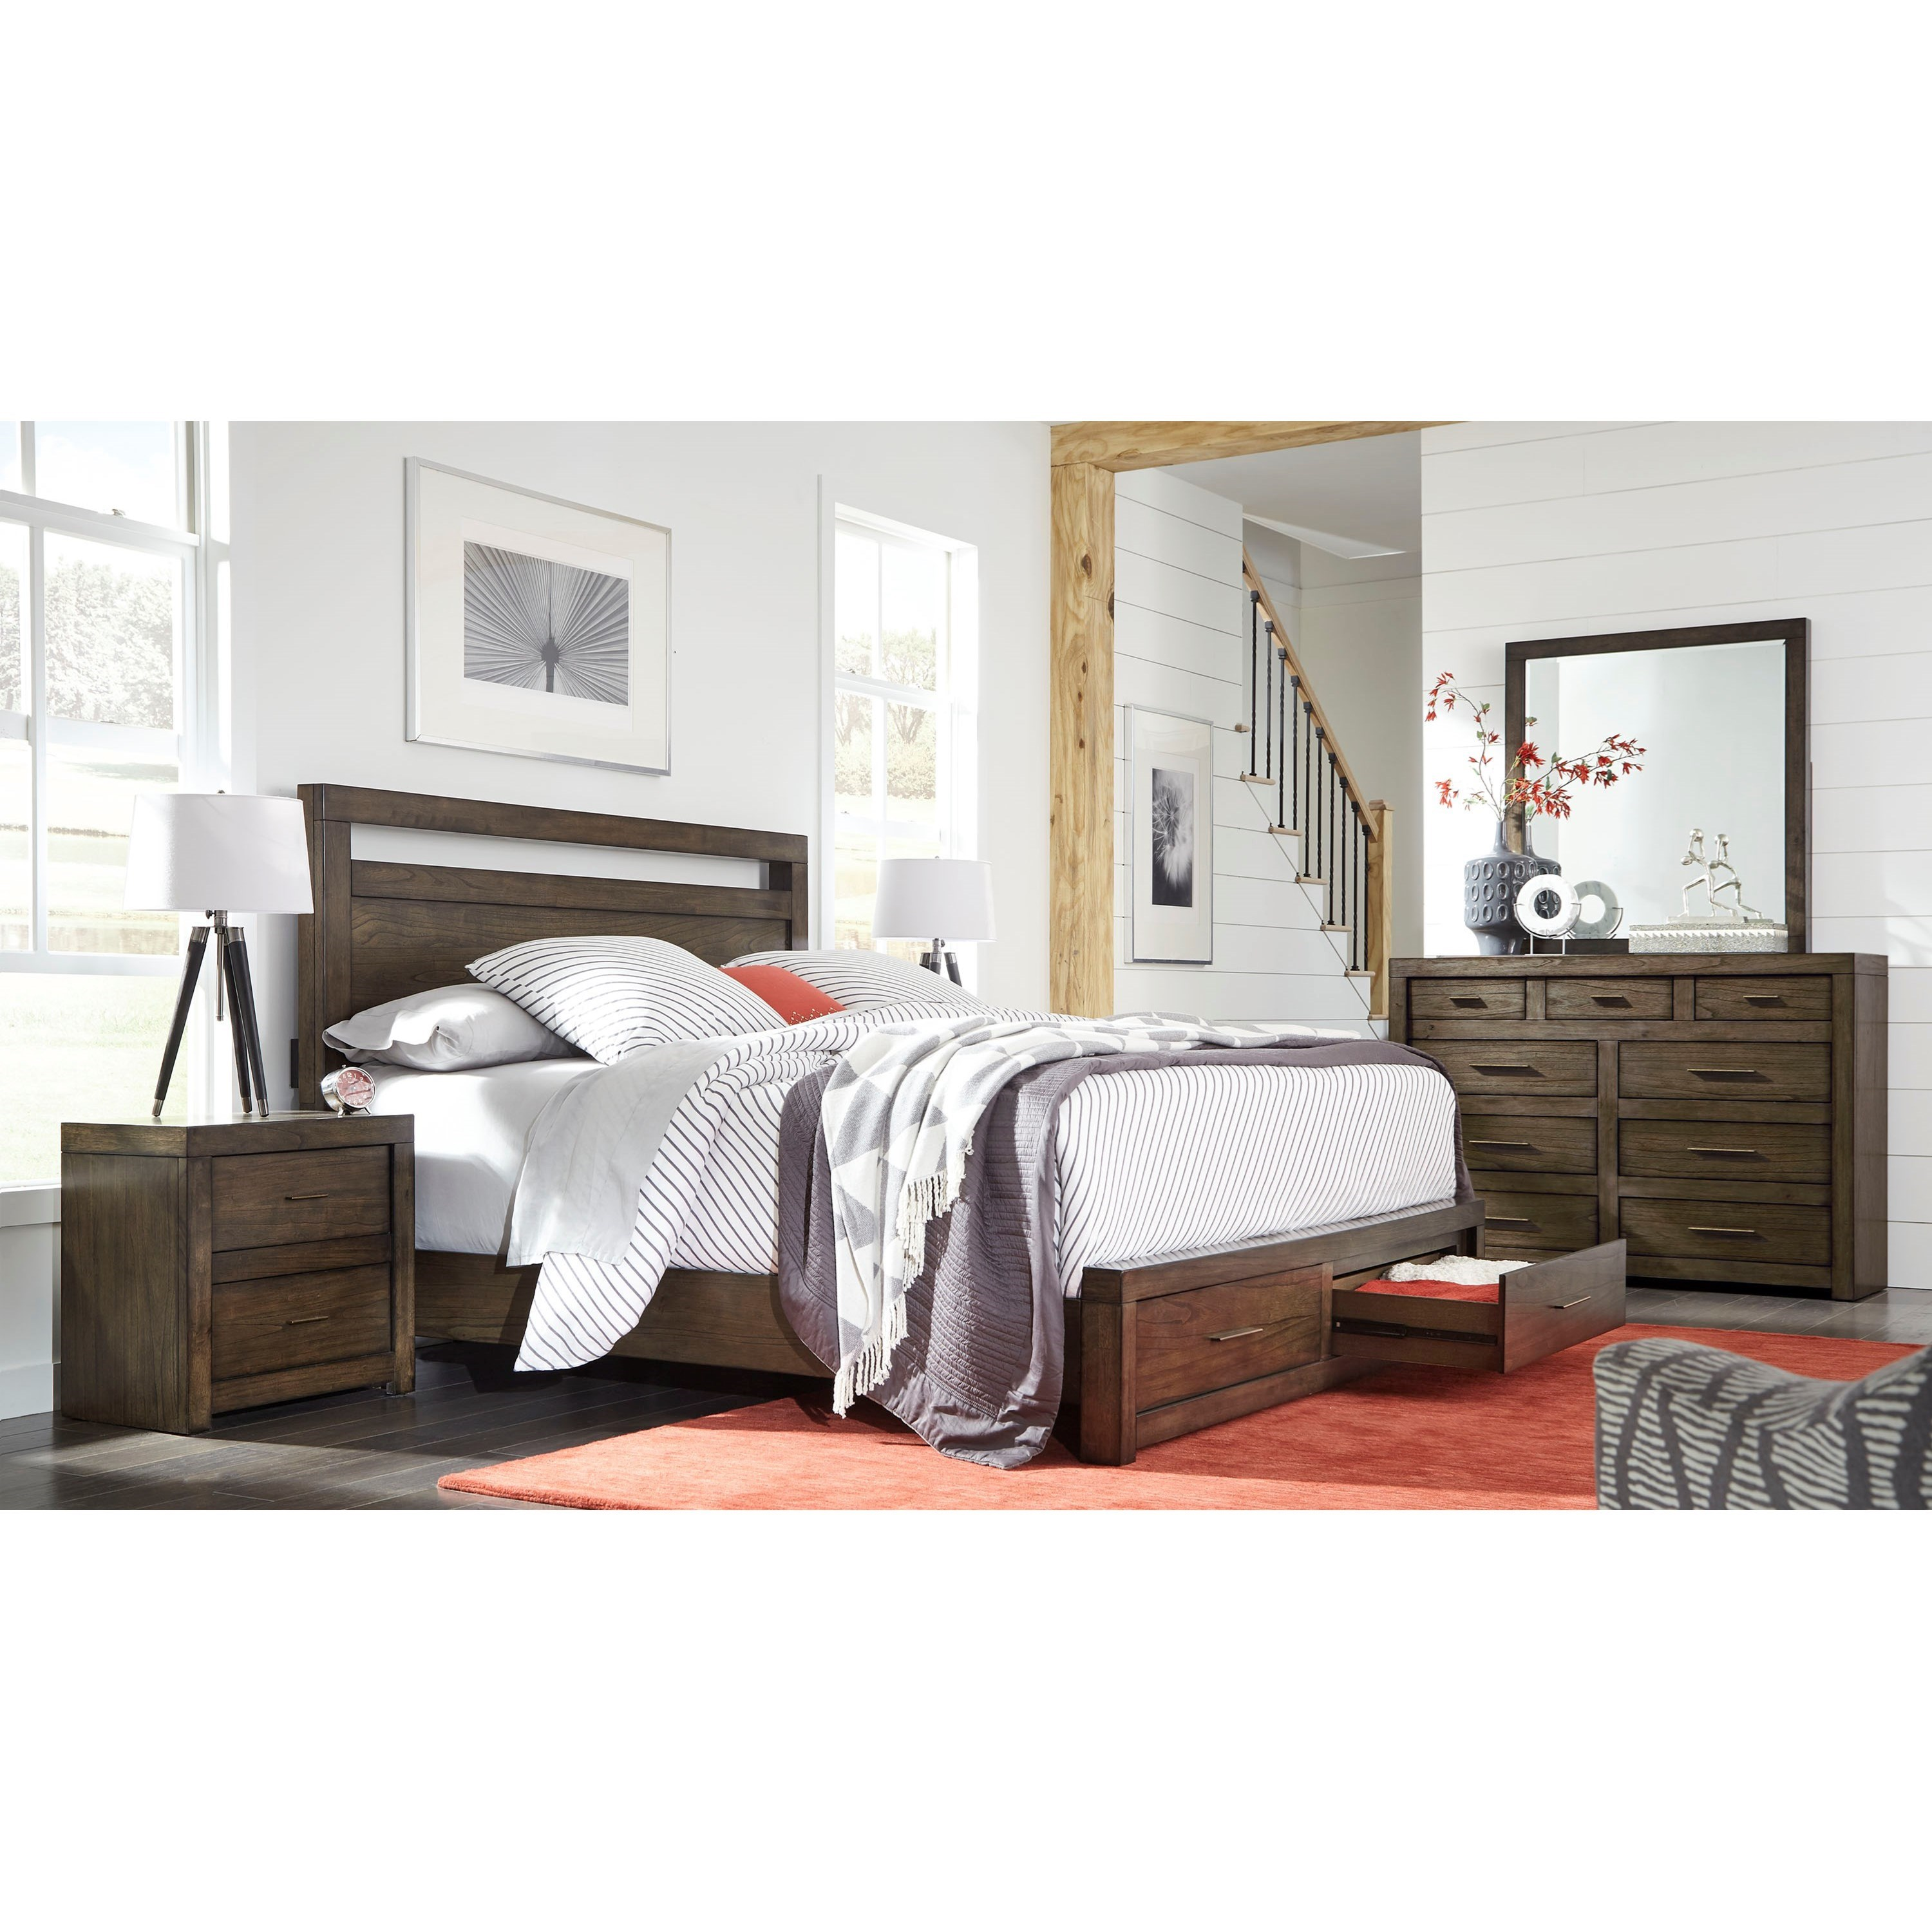 Modern Loft Queen Bedroom Group by Aspenhome at Stoney Creek Furniture